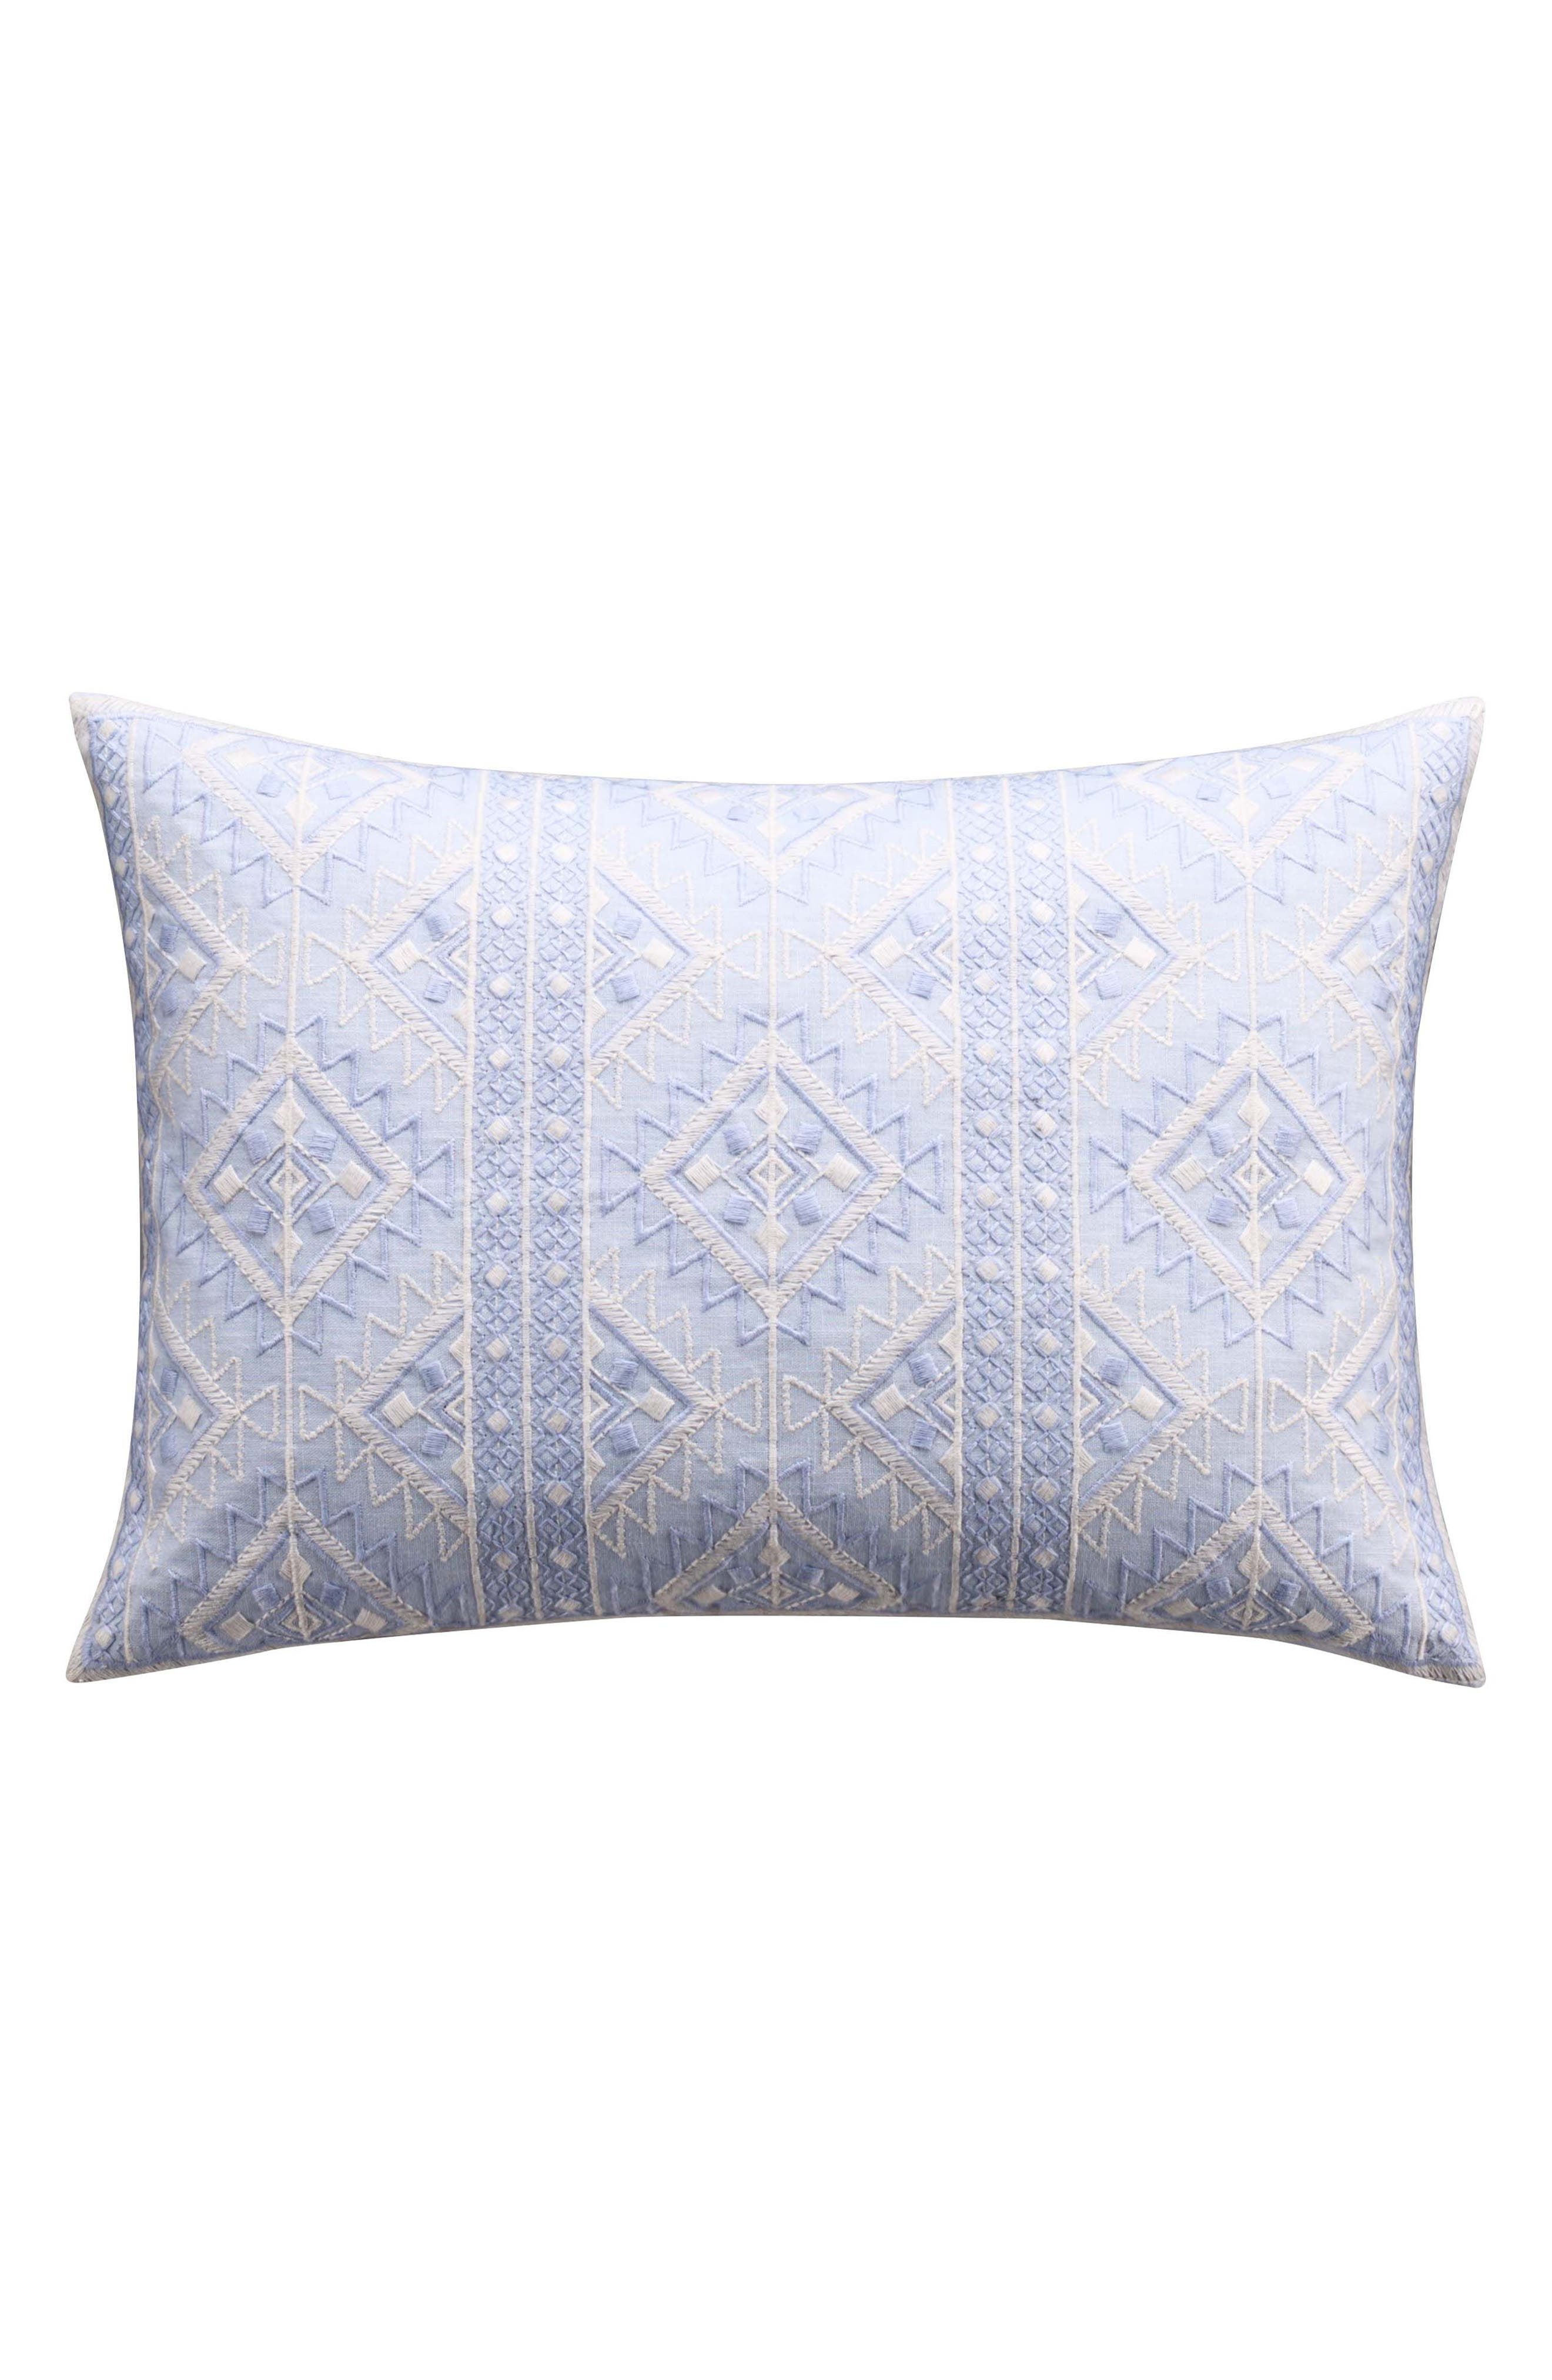 Geometric Embroidered Accent Pillow,                         Main,                         color, Blue